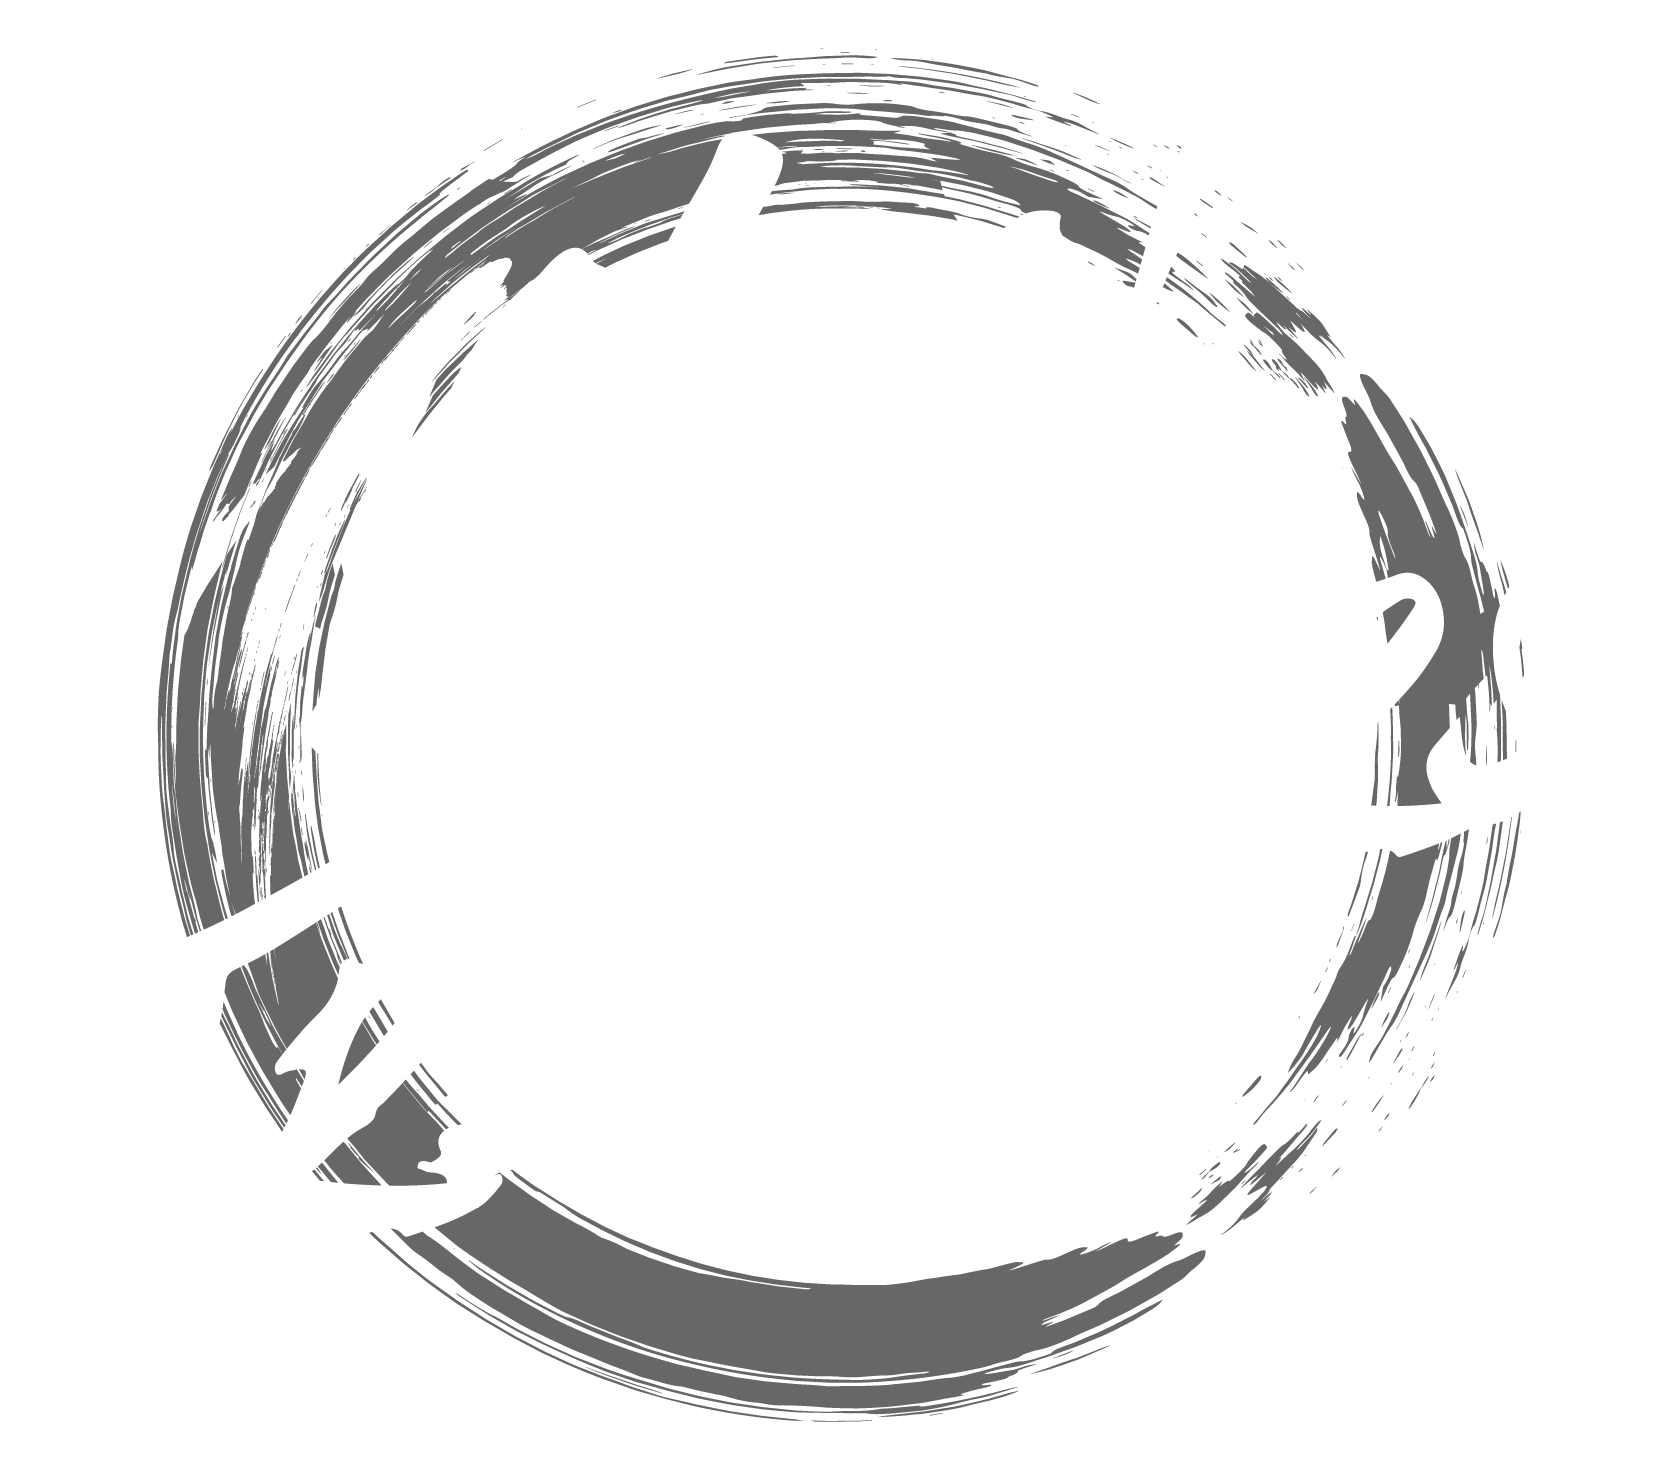 sun traitors | Official Website Of New Melbourne Based Rock Band